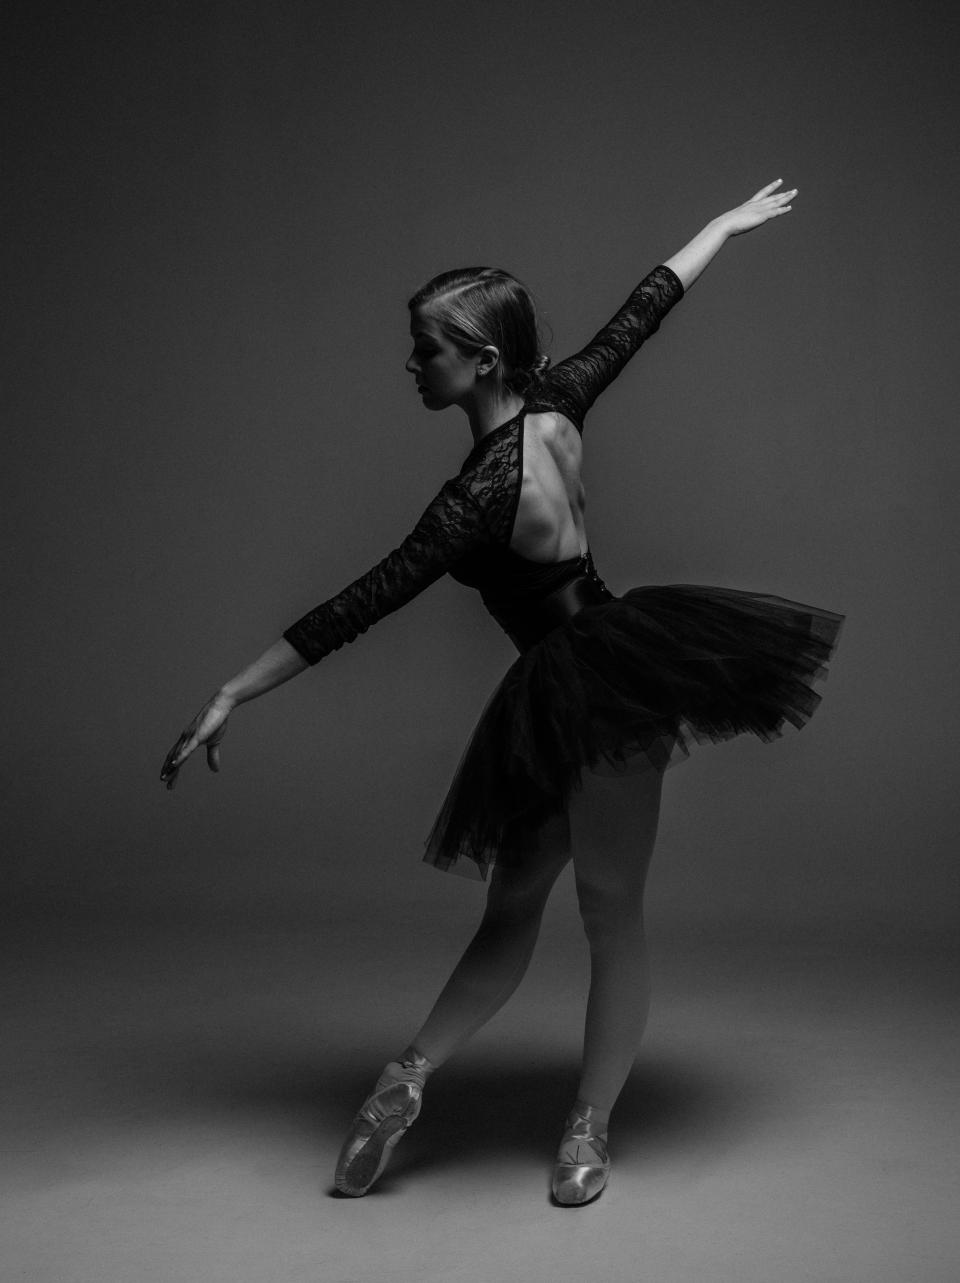 people, woman, black and white, dancer, ballet, ballerina, dress, black, beauty, art, dance